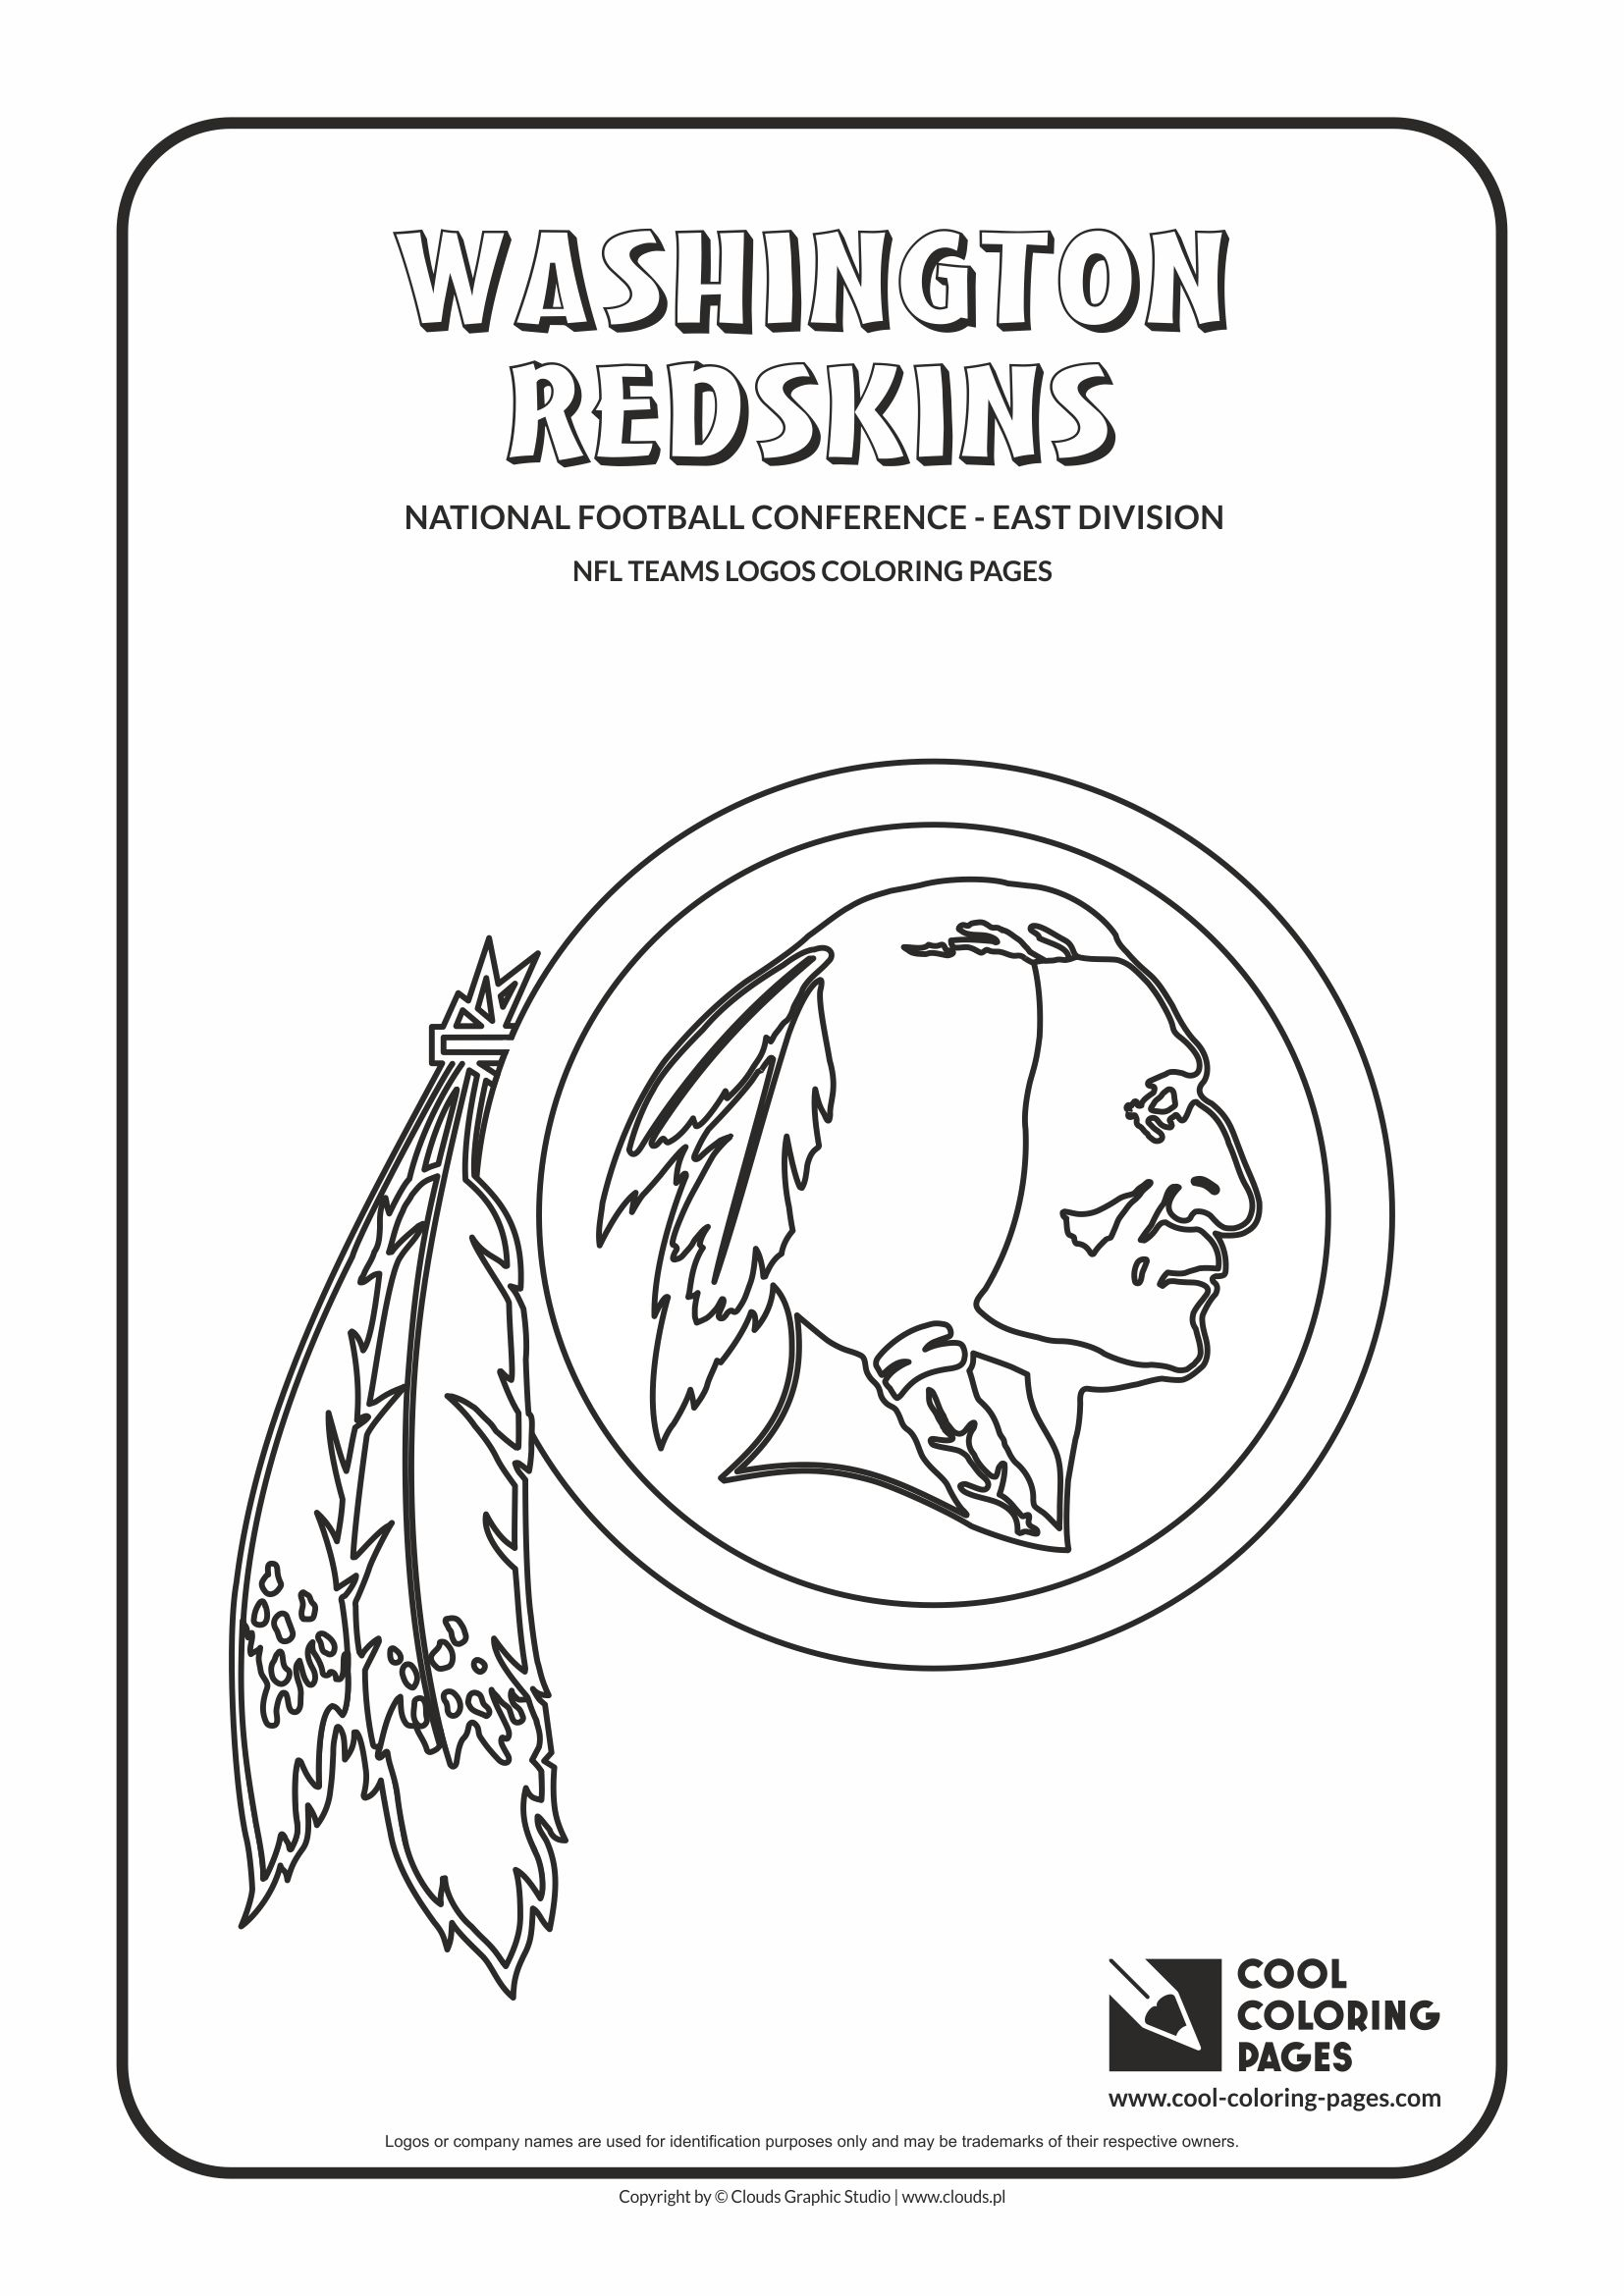 Cool Coloring Pages Washington